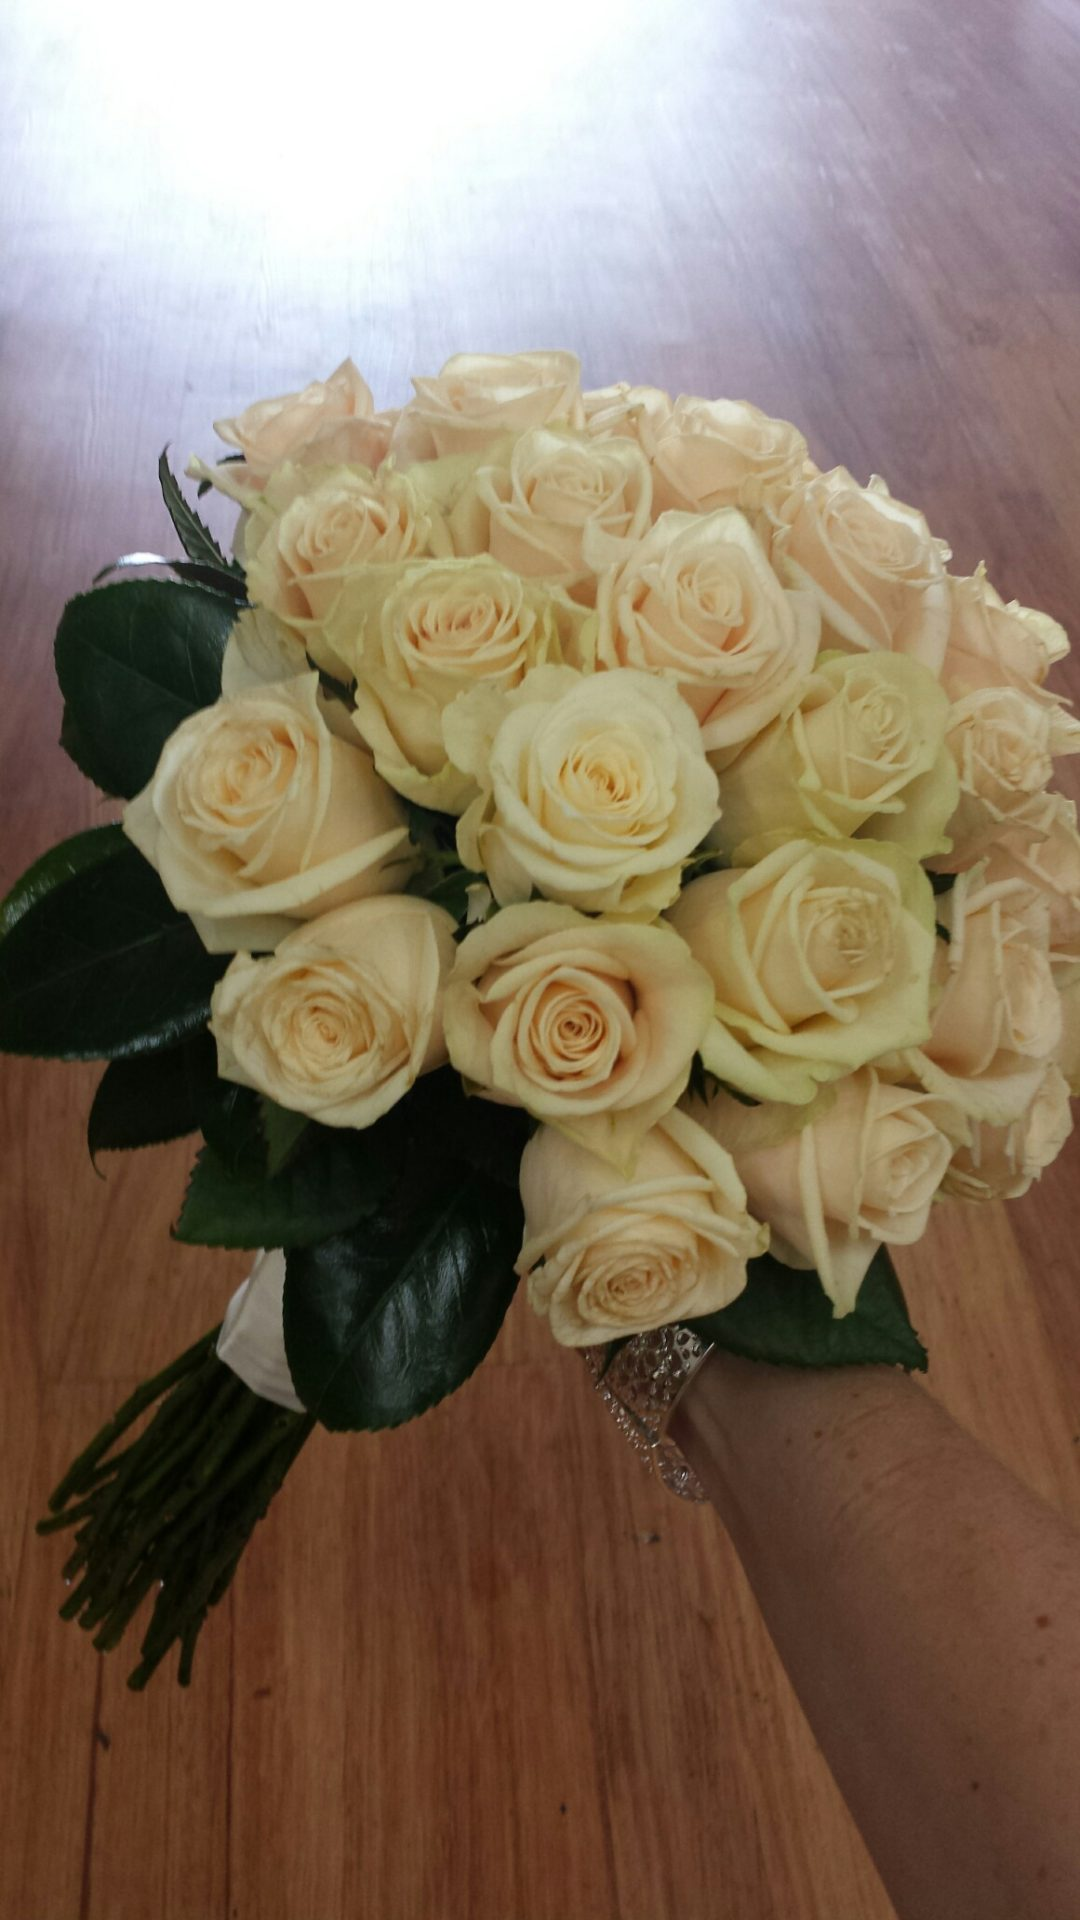 Cream rose compact bouquet